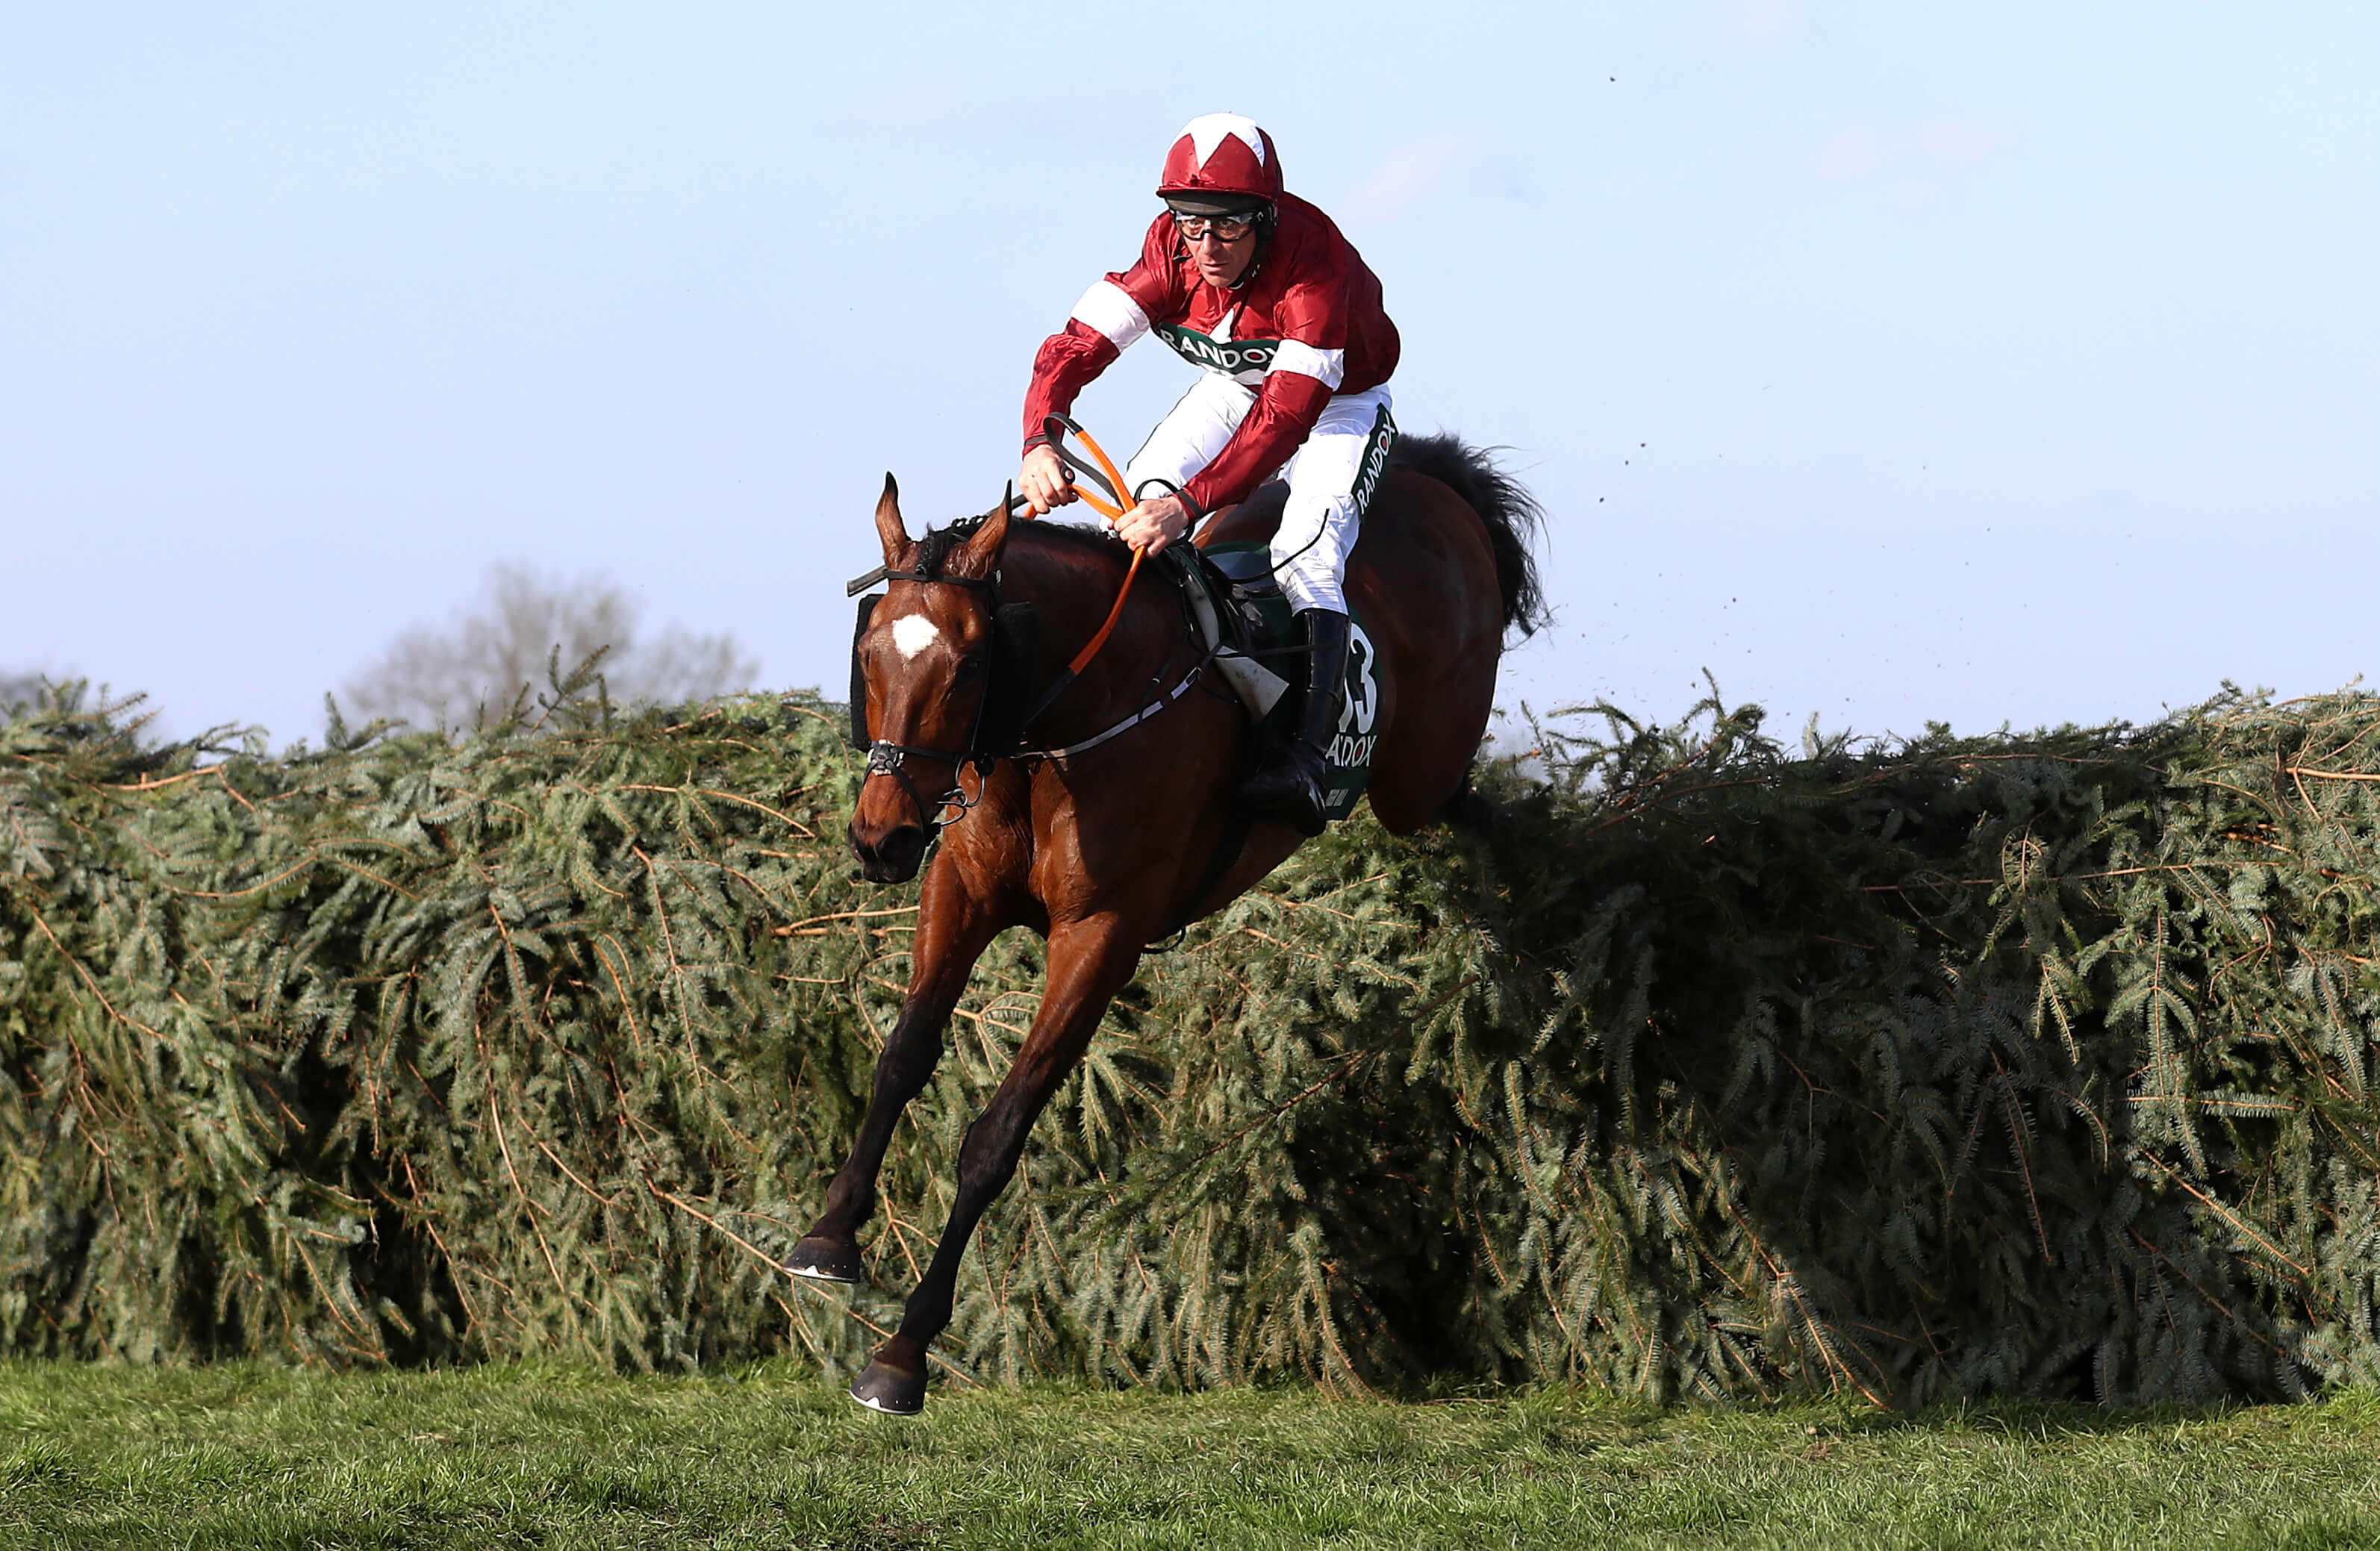 Grand National 2019: Tiger Roll can land historic double at Aintree